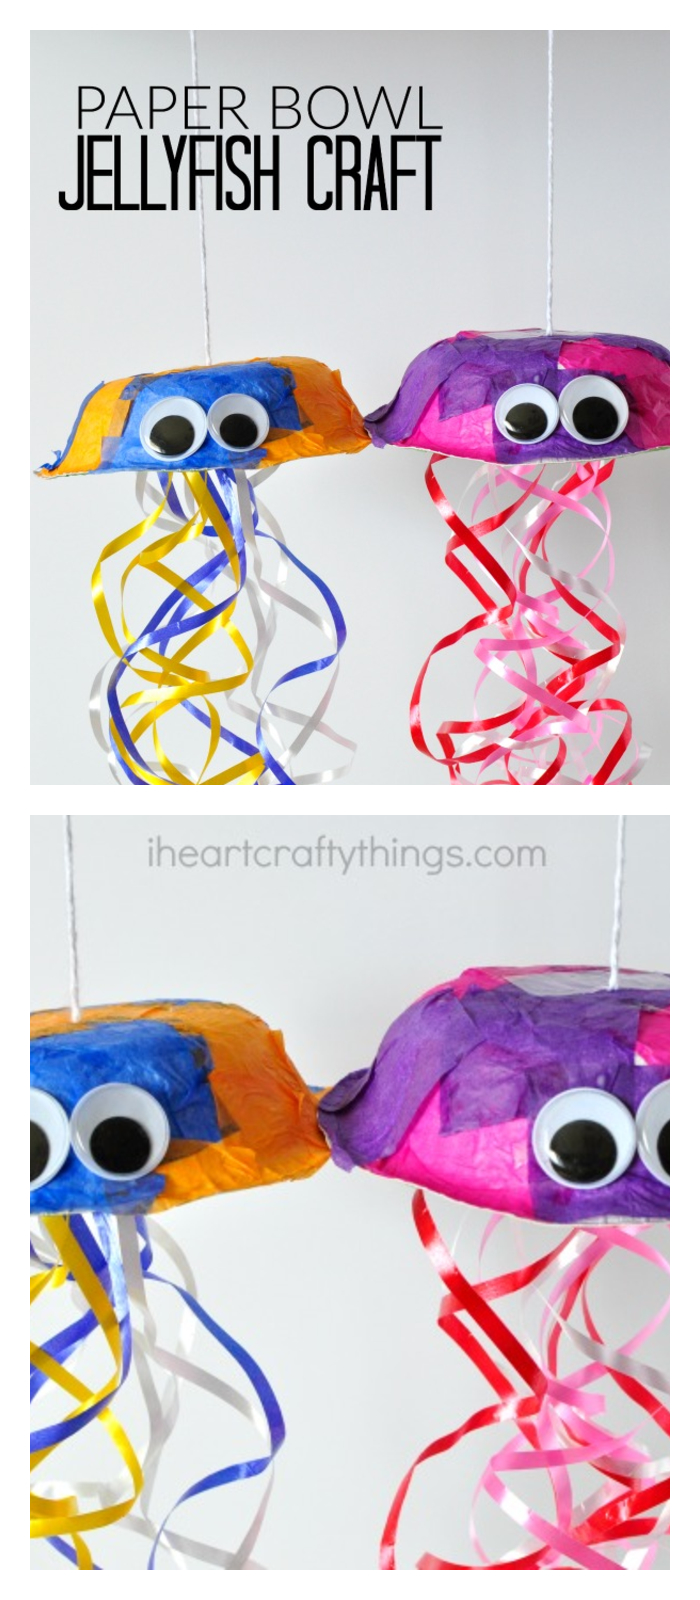 E A COLORFUL JELLYFISH CRAFT Kids Crafts Ideas That You Can Make Easily